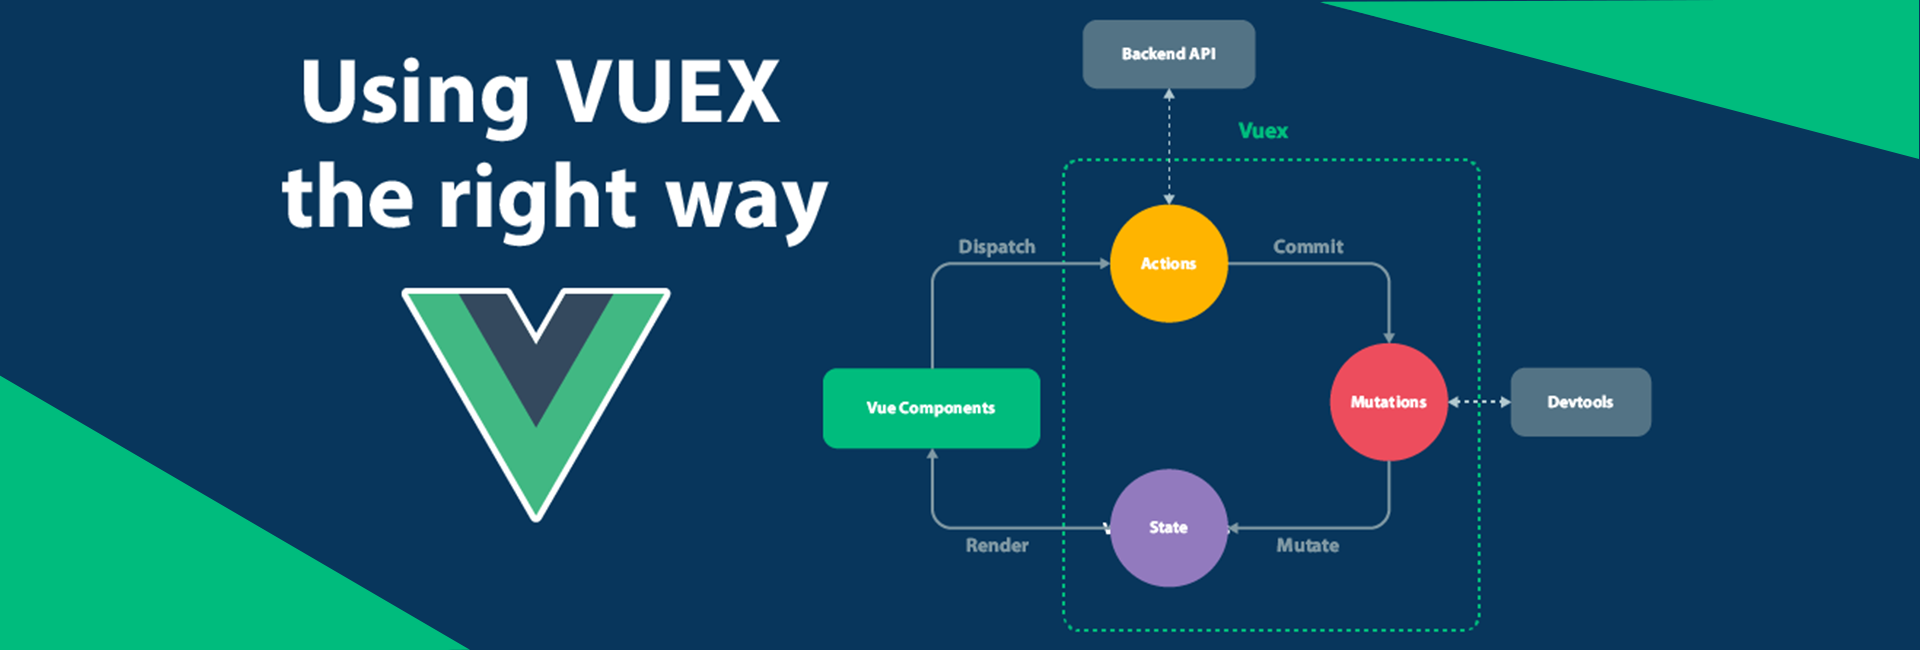 Using Vuex the right way